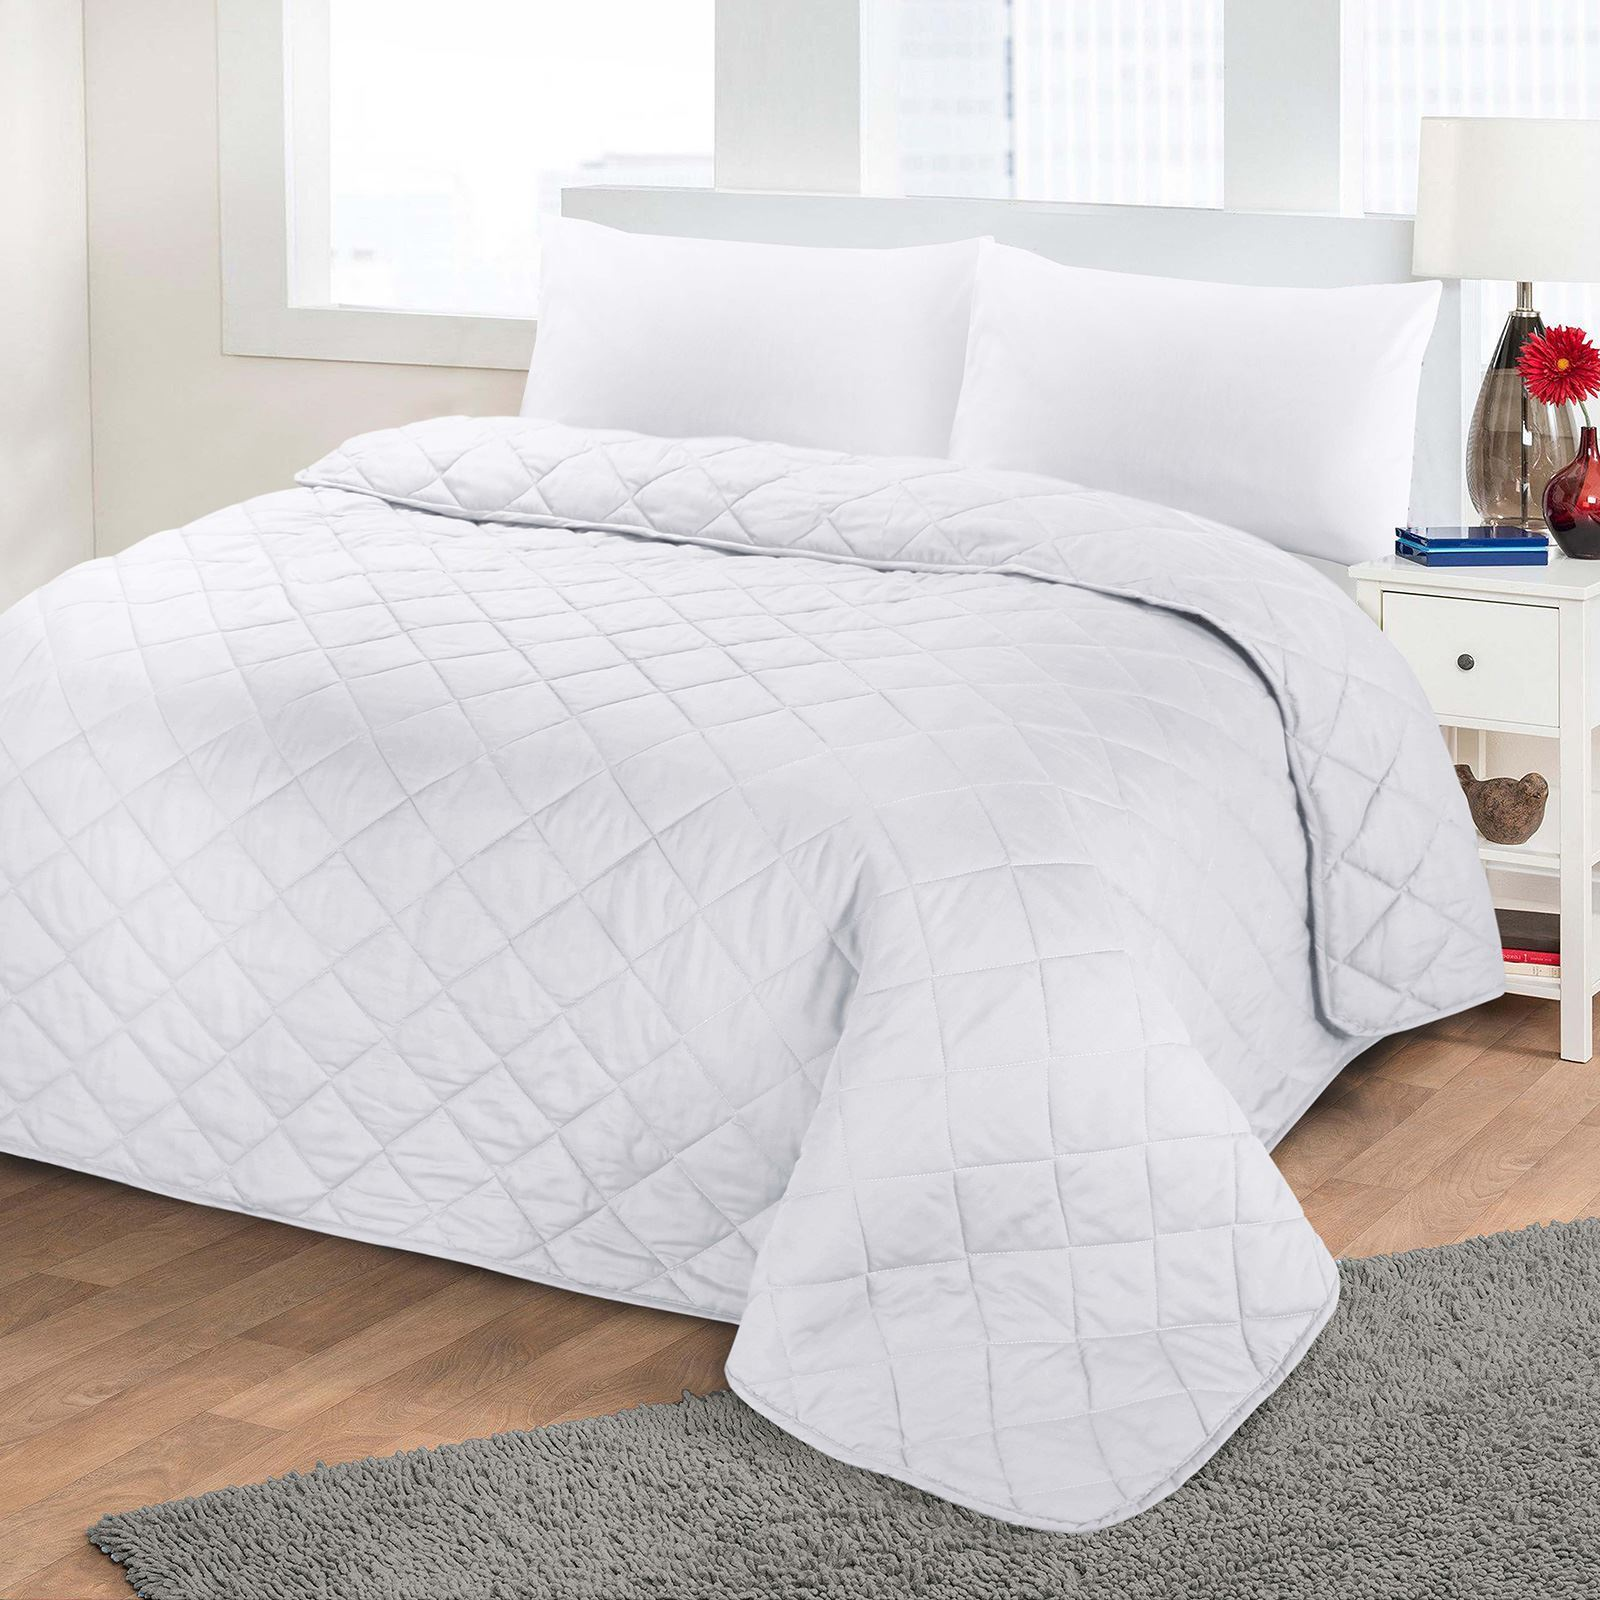 Quilted bedspread on the bed: especially the choice and tailoring do-it-yourself 94